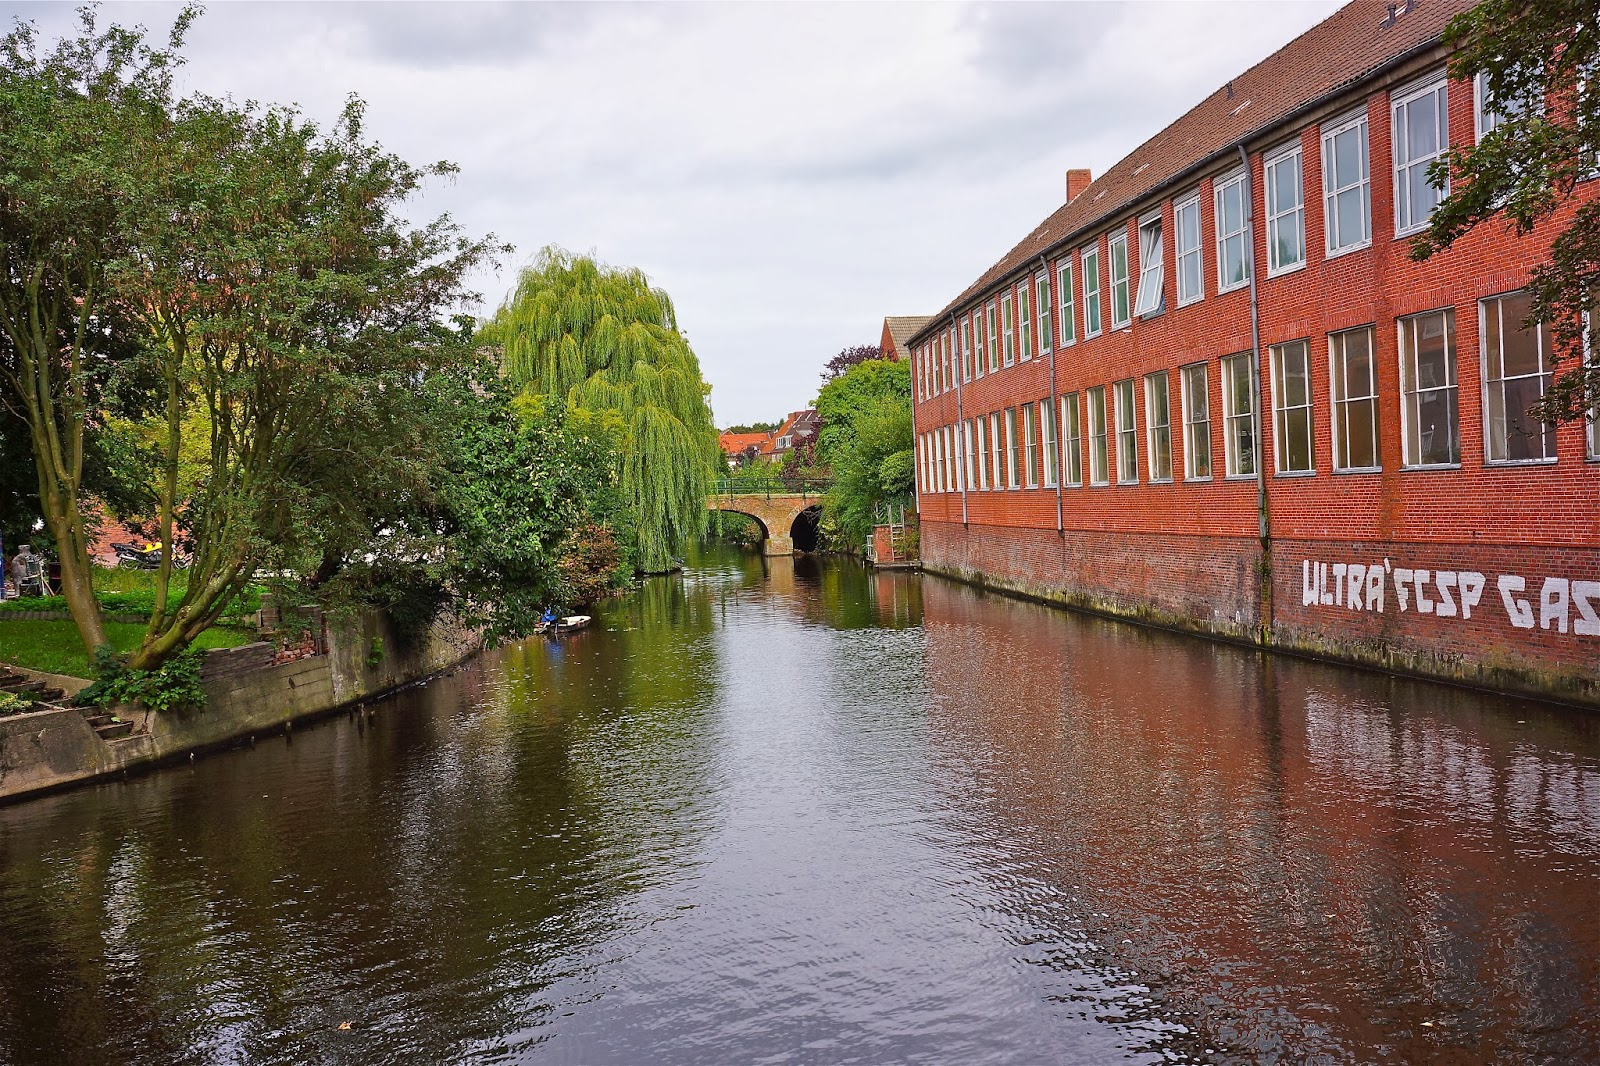 Picture of a canal in Emden, Germany.